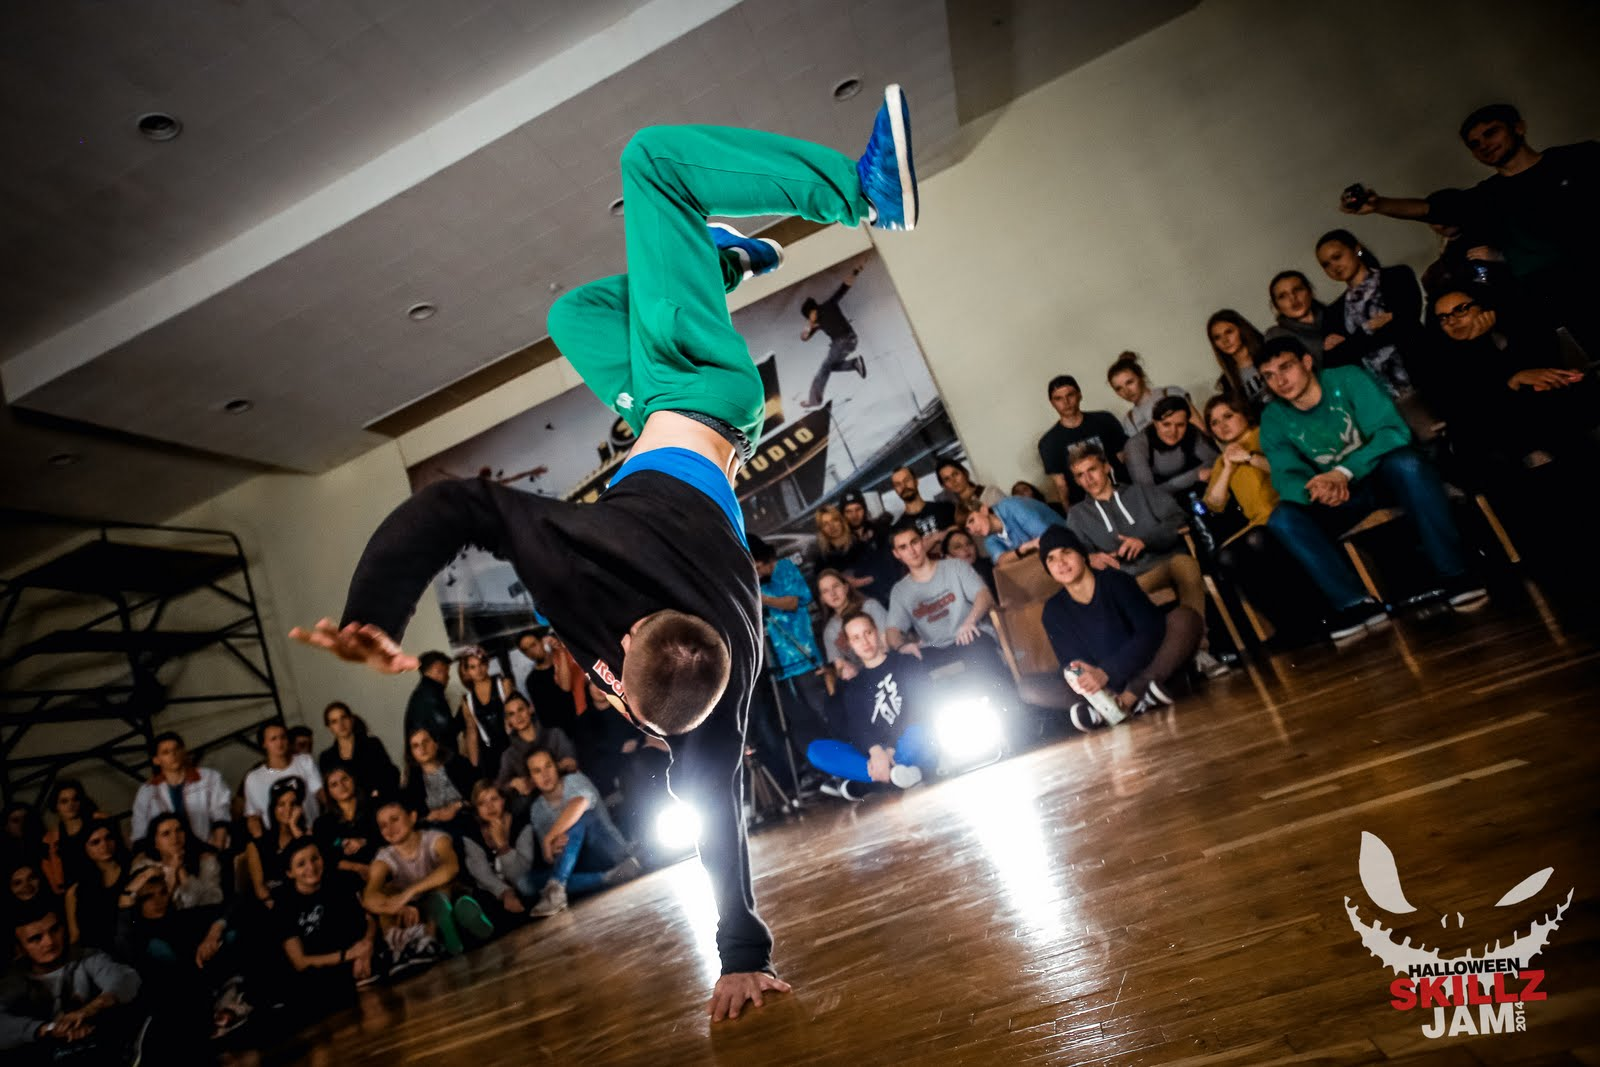 SKILLZ Halloween Jam Battles - a_MG_2595.jpg